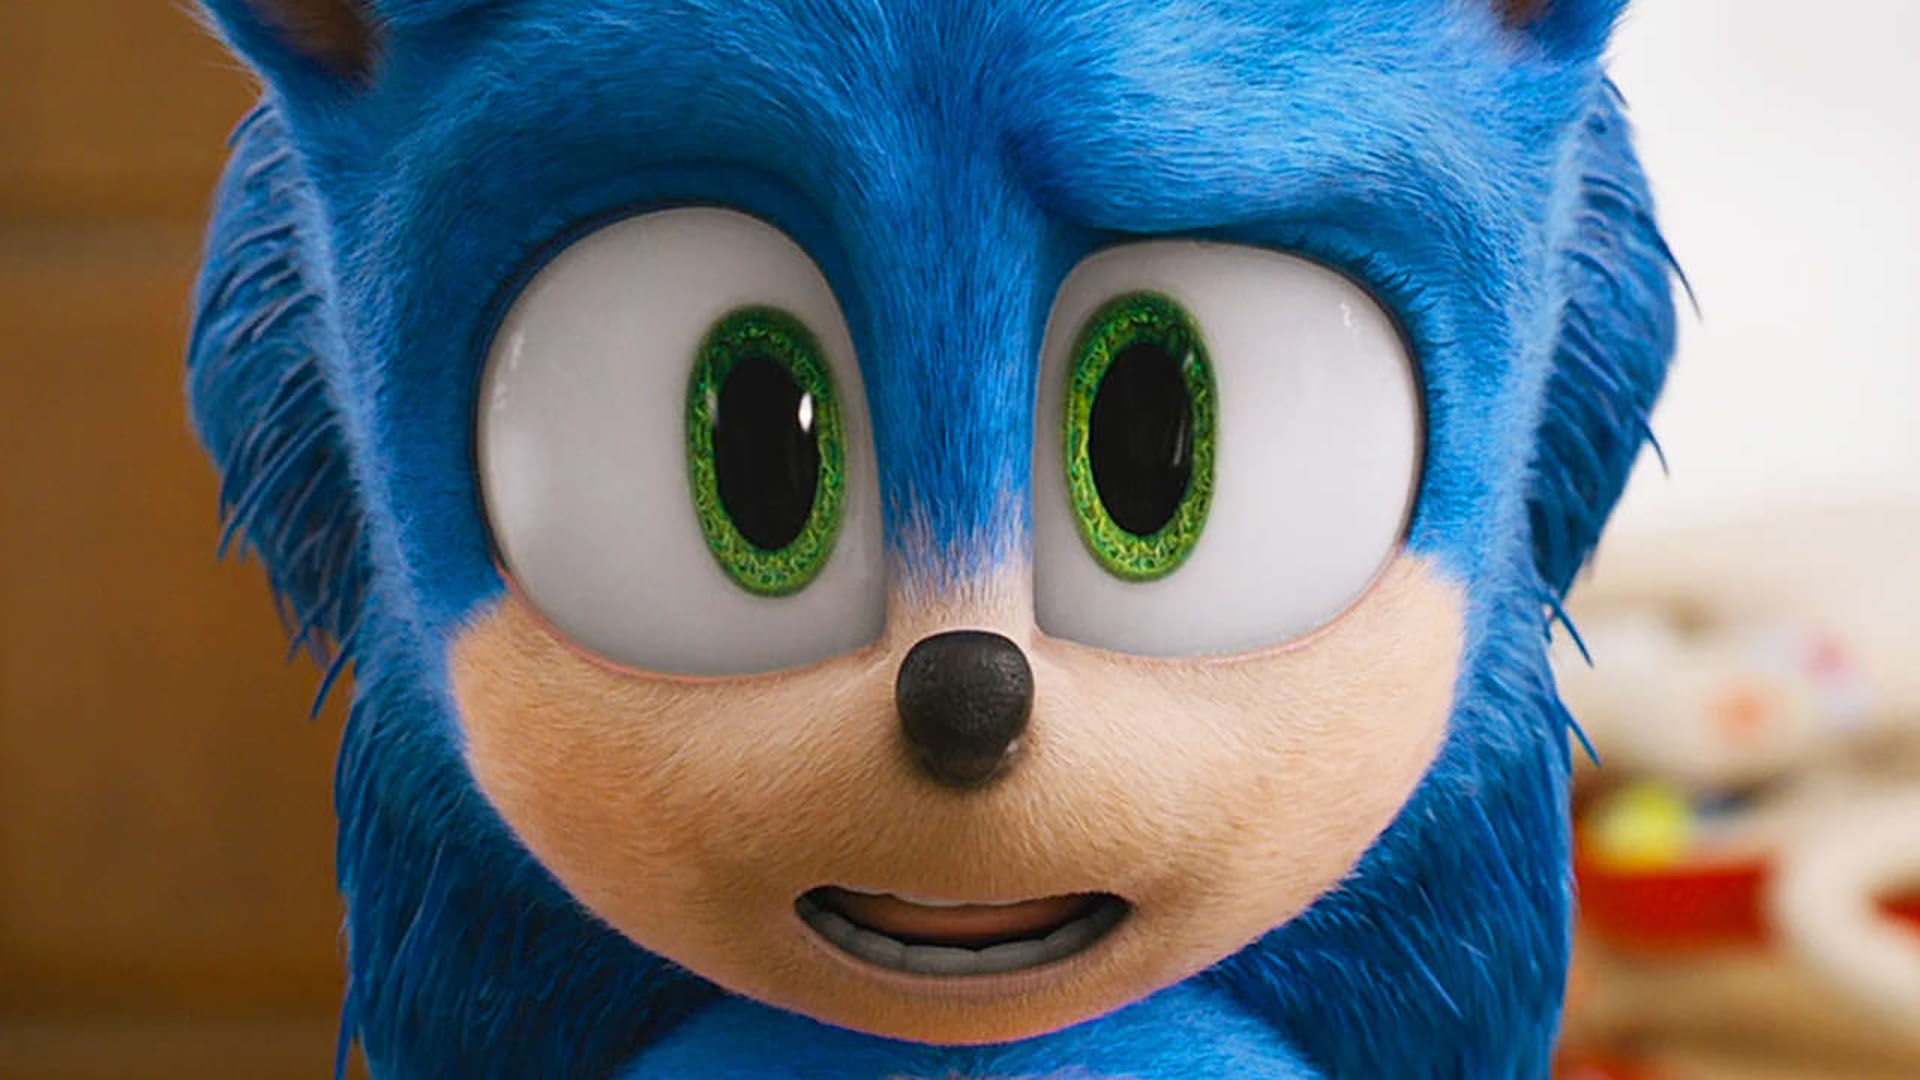 Sonic The Hedgehog Redesign Puts Us at Ease